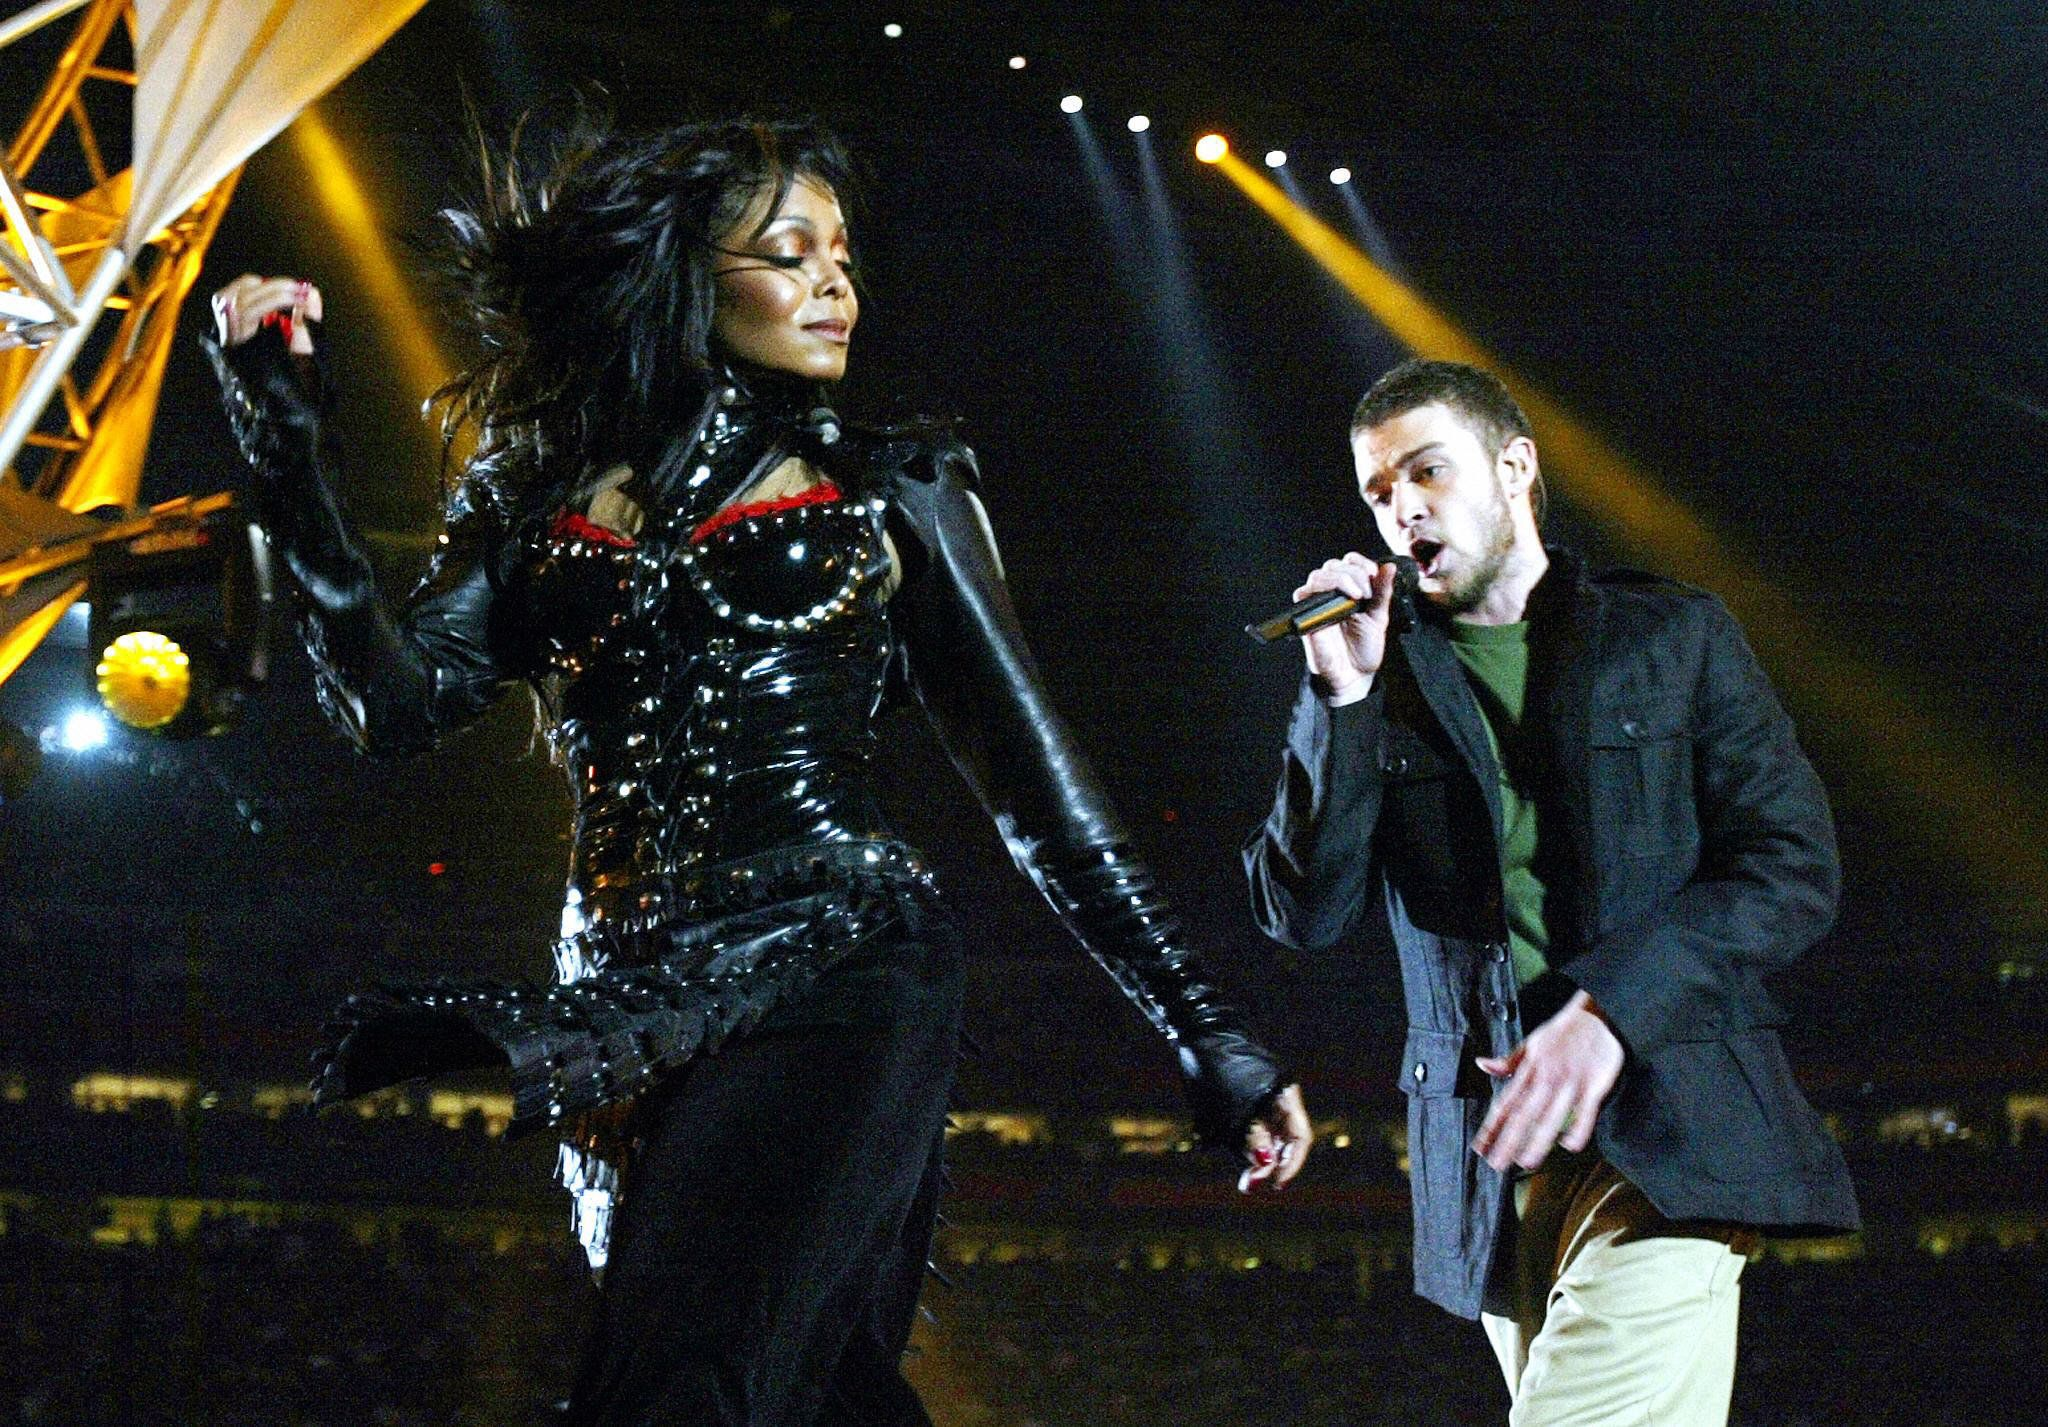 HOUSTON, UNITED STATES:  Janet Jackson and Justin Timberlake perform at half-time at Super Bowl XXXVIII at Reliant Stadium, 01 February 2004 in Houston, TX.  AFP PHOTO Jeff HAYNES  (Photo credit should read JEFF HAYNES/AFP/Getty Images)